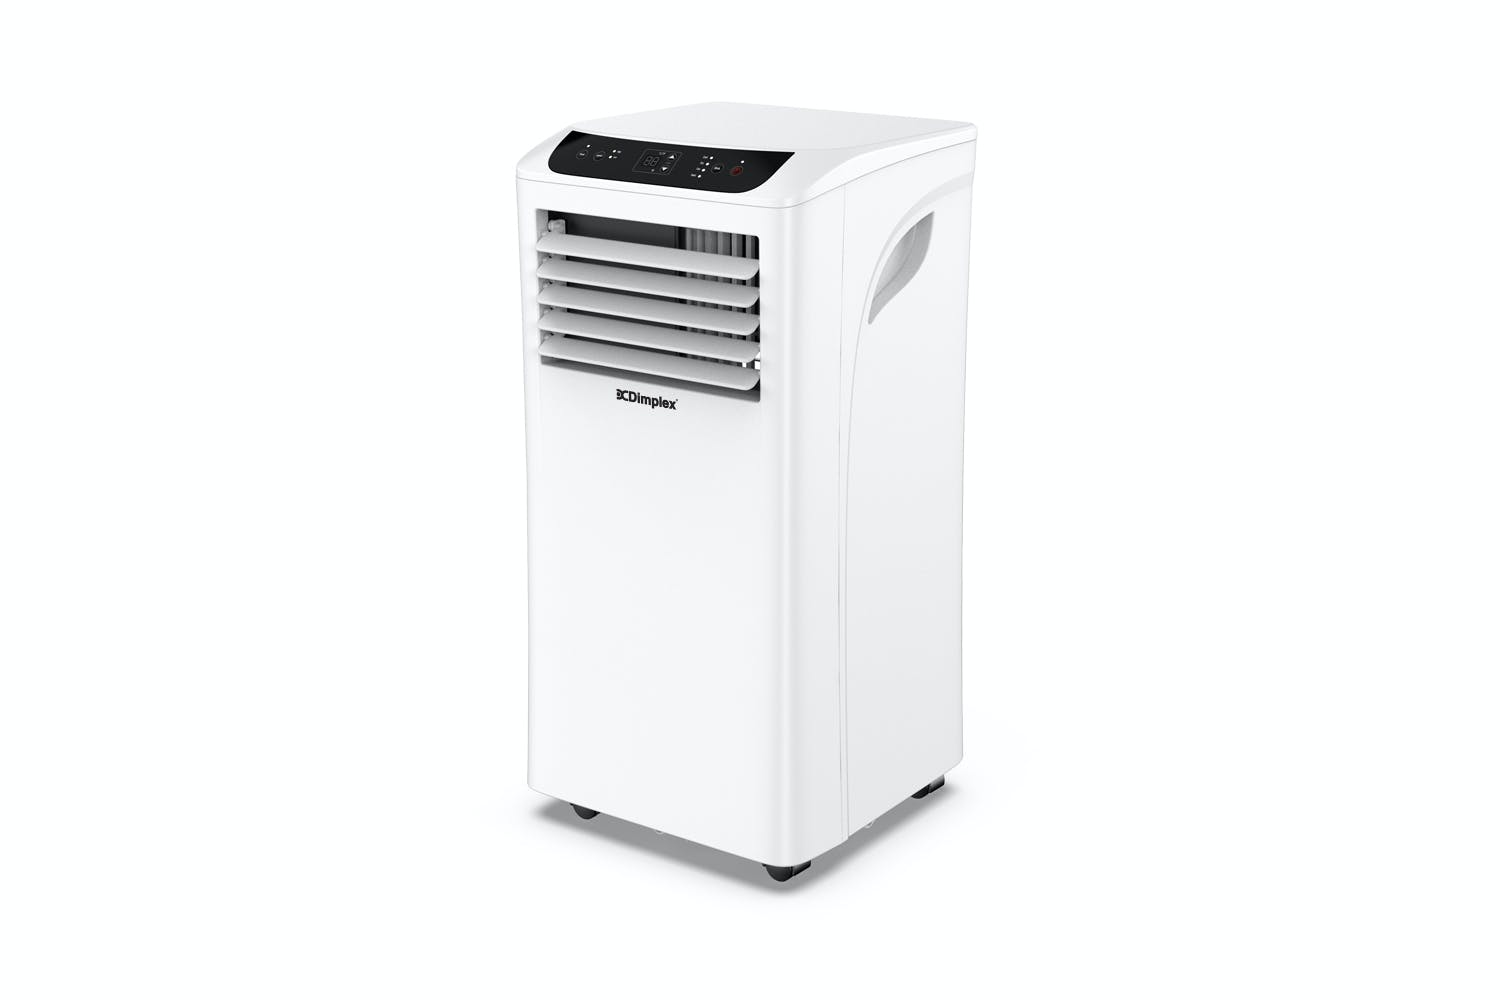 Image of Dimplex Reverse Cycle Portable Air Conditioner